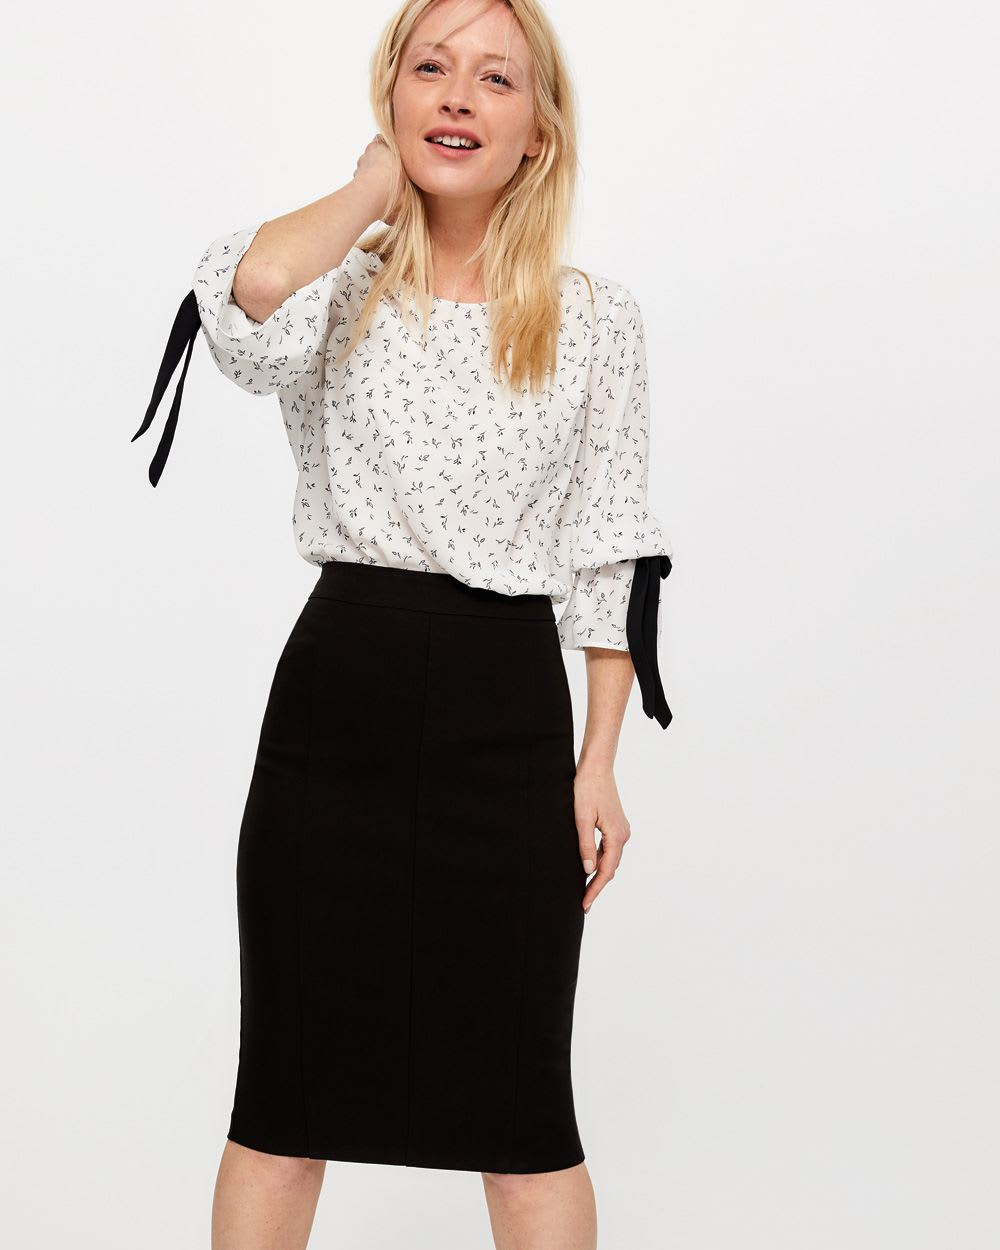 The Iconic Elastic Waist Solid Pencil Skirt